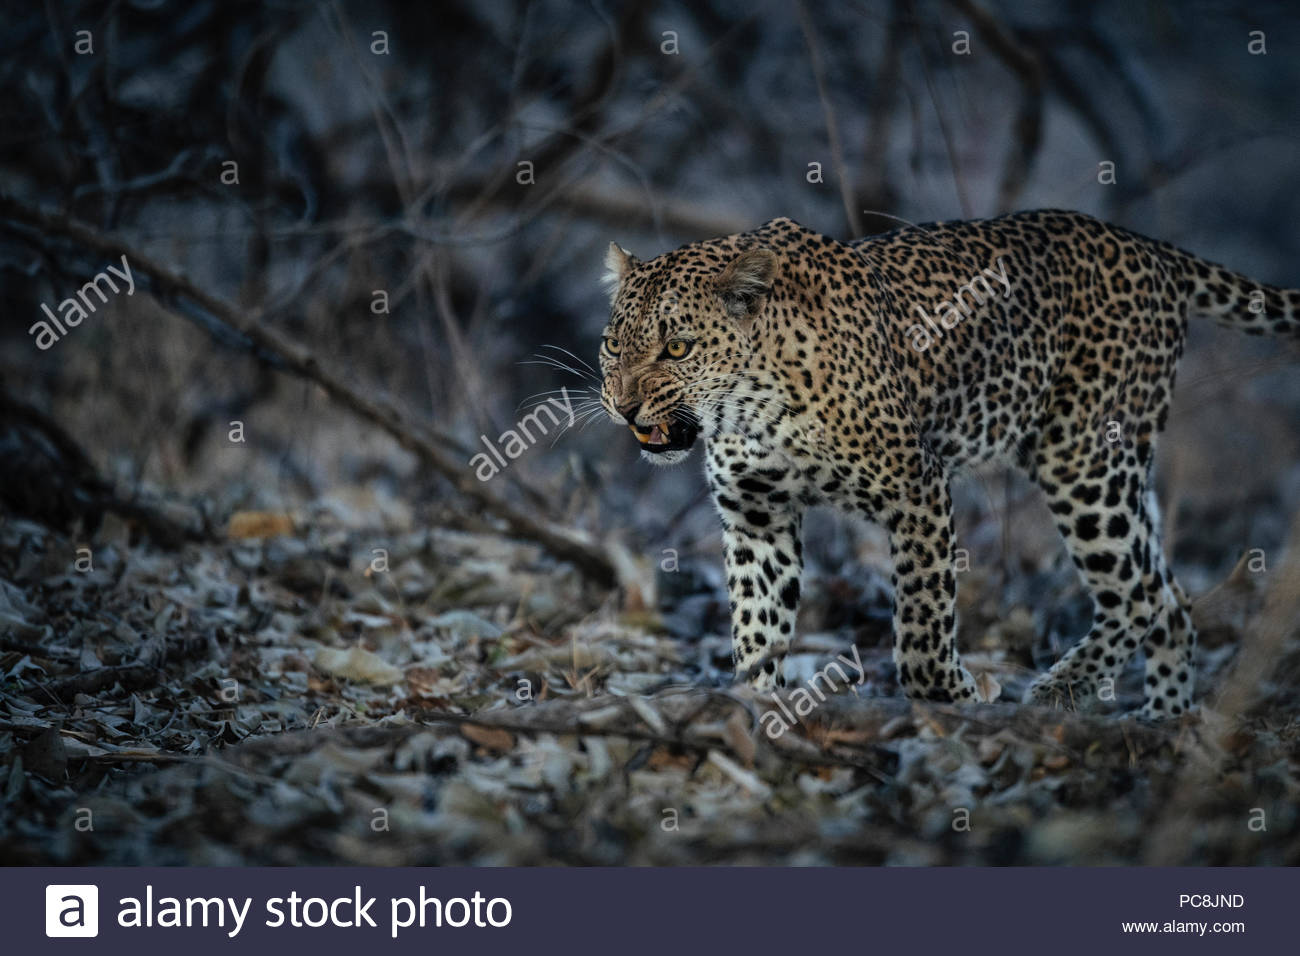 A female African leopard, Panthera pardus pardus, growling at dusk. - Stock Image